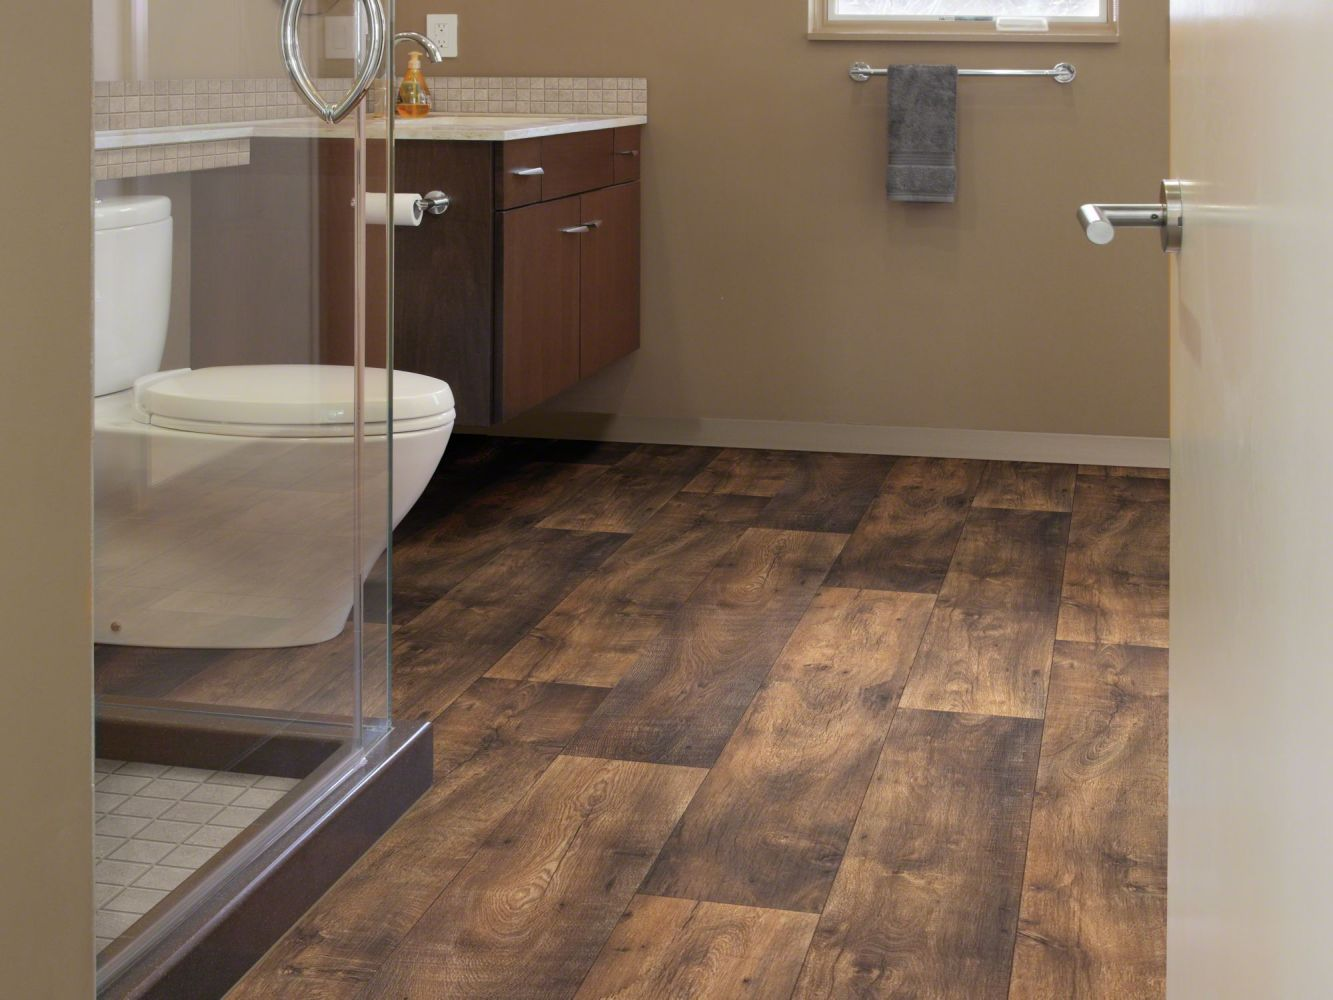 Shaw Floors Vinyl Residential Olympian Vineyard Brown 00762_SA386